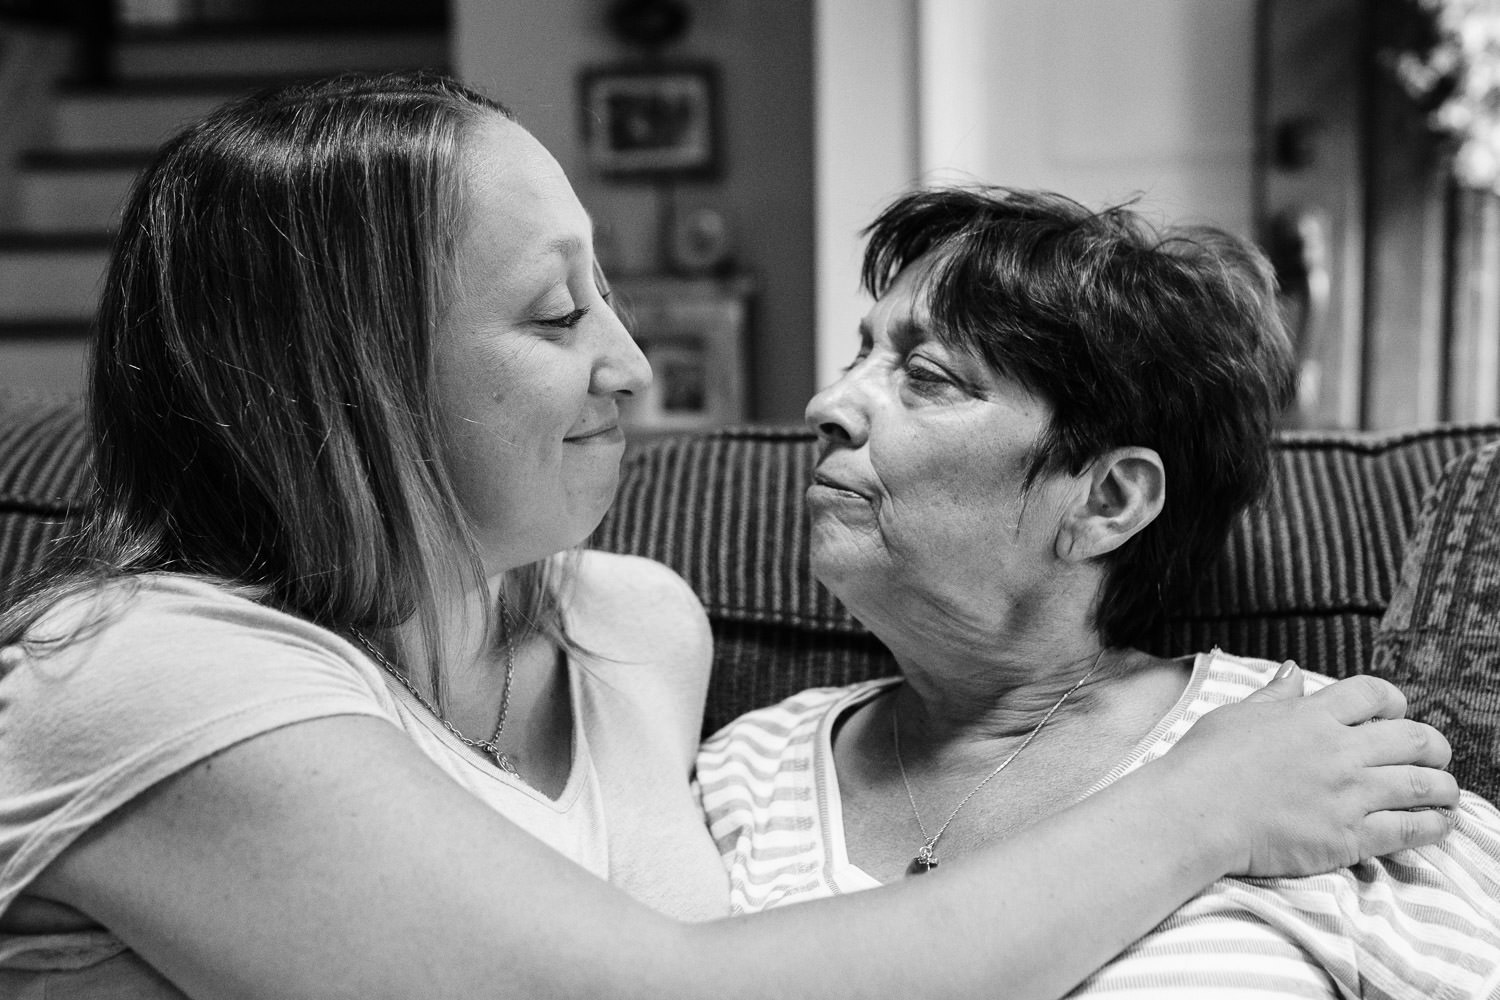 A mother and daughter look in each others' eyes.